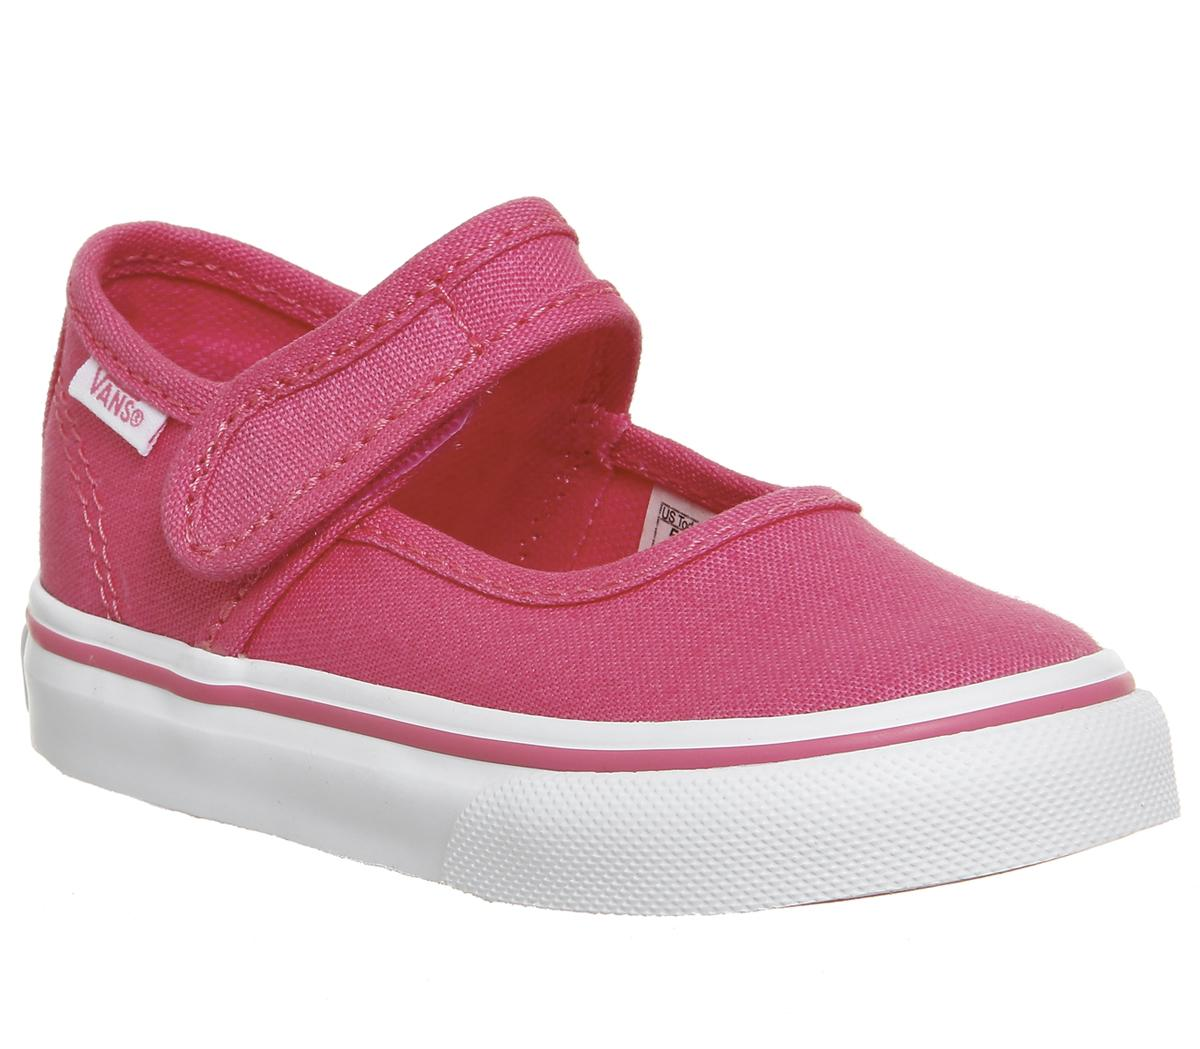 Vans Mary Jane Toddler Shoes Hot Pink